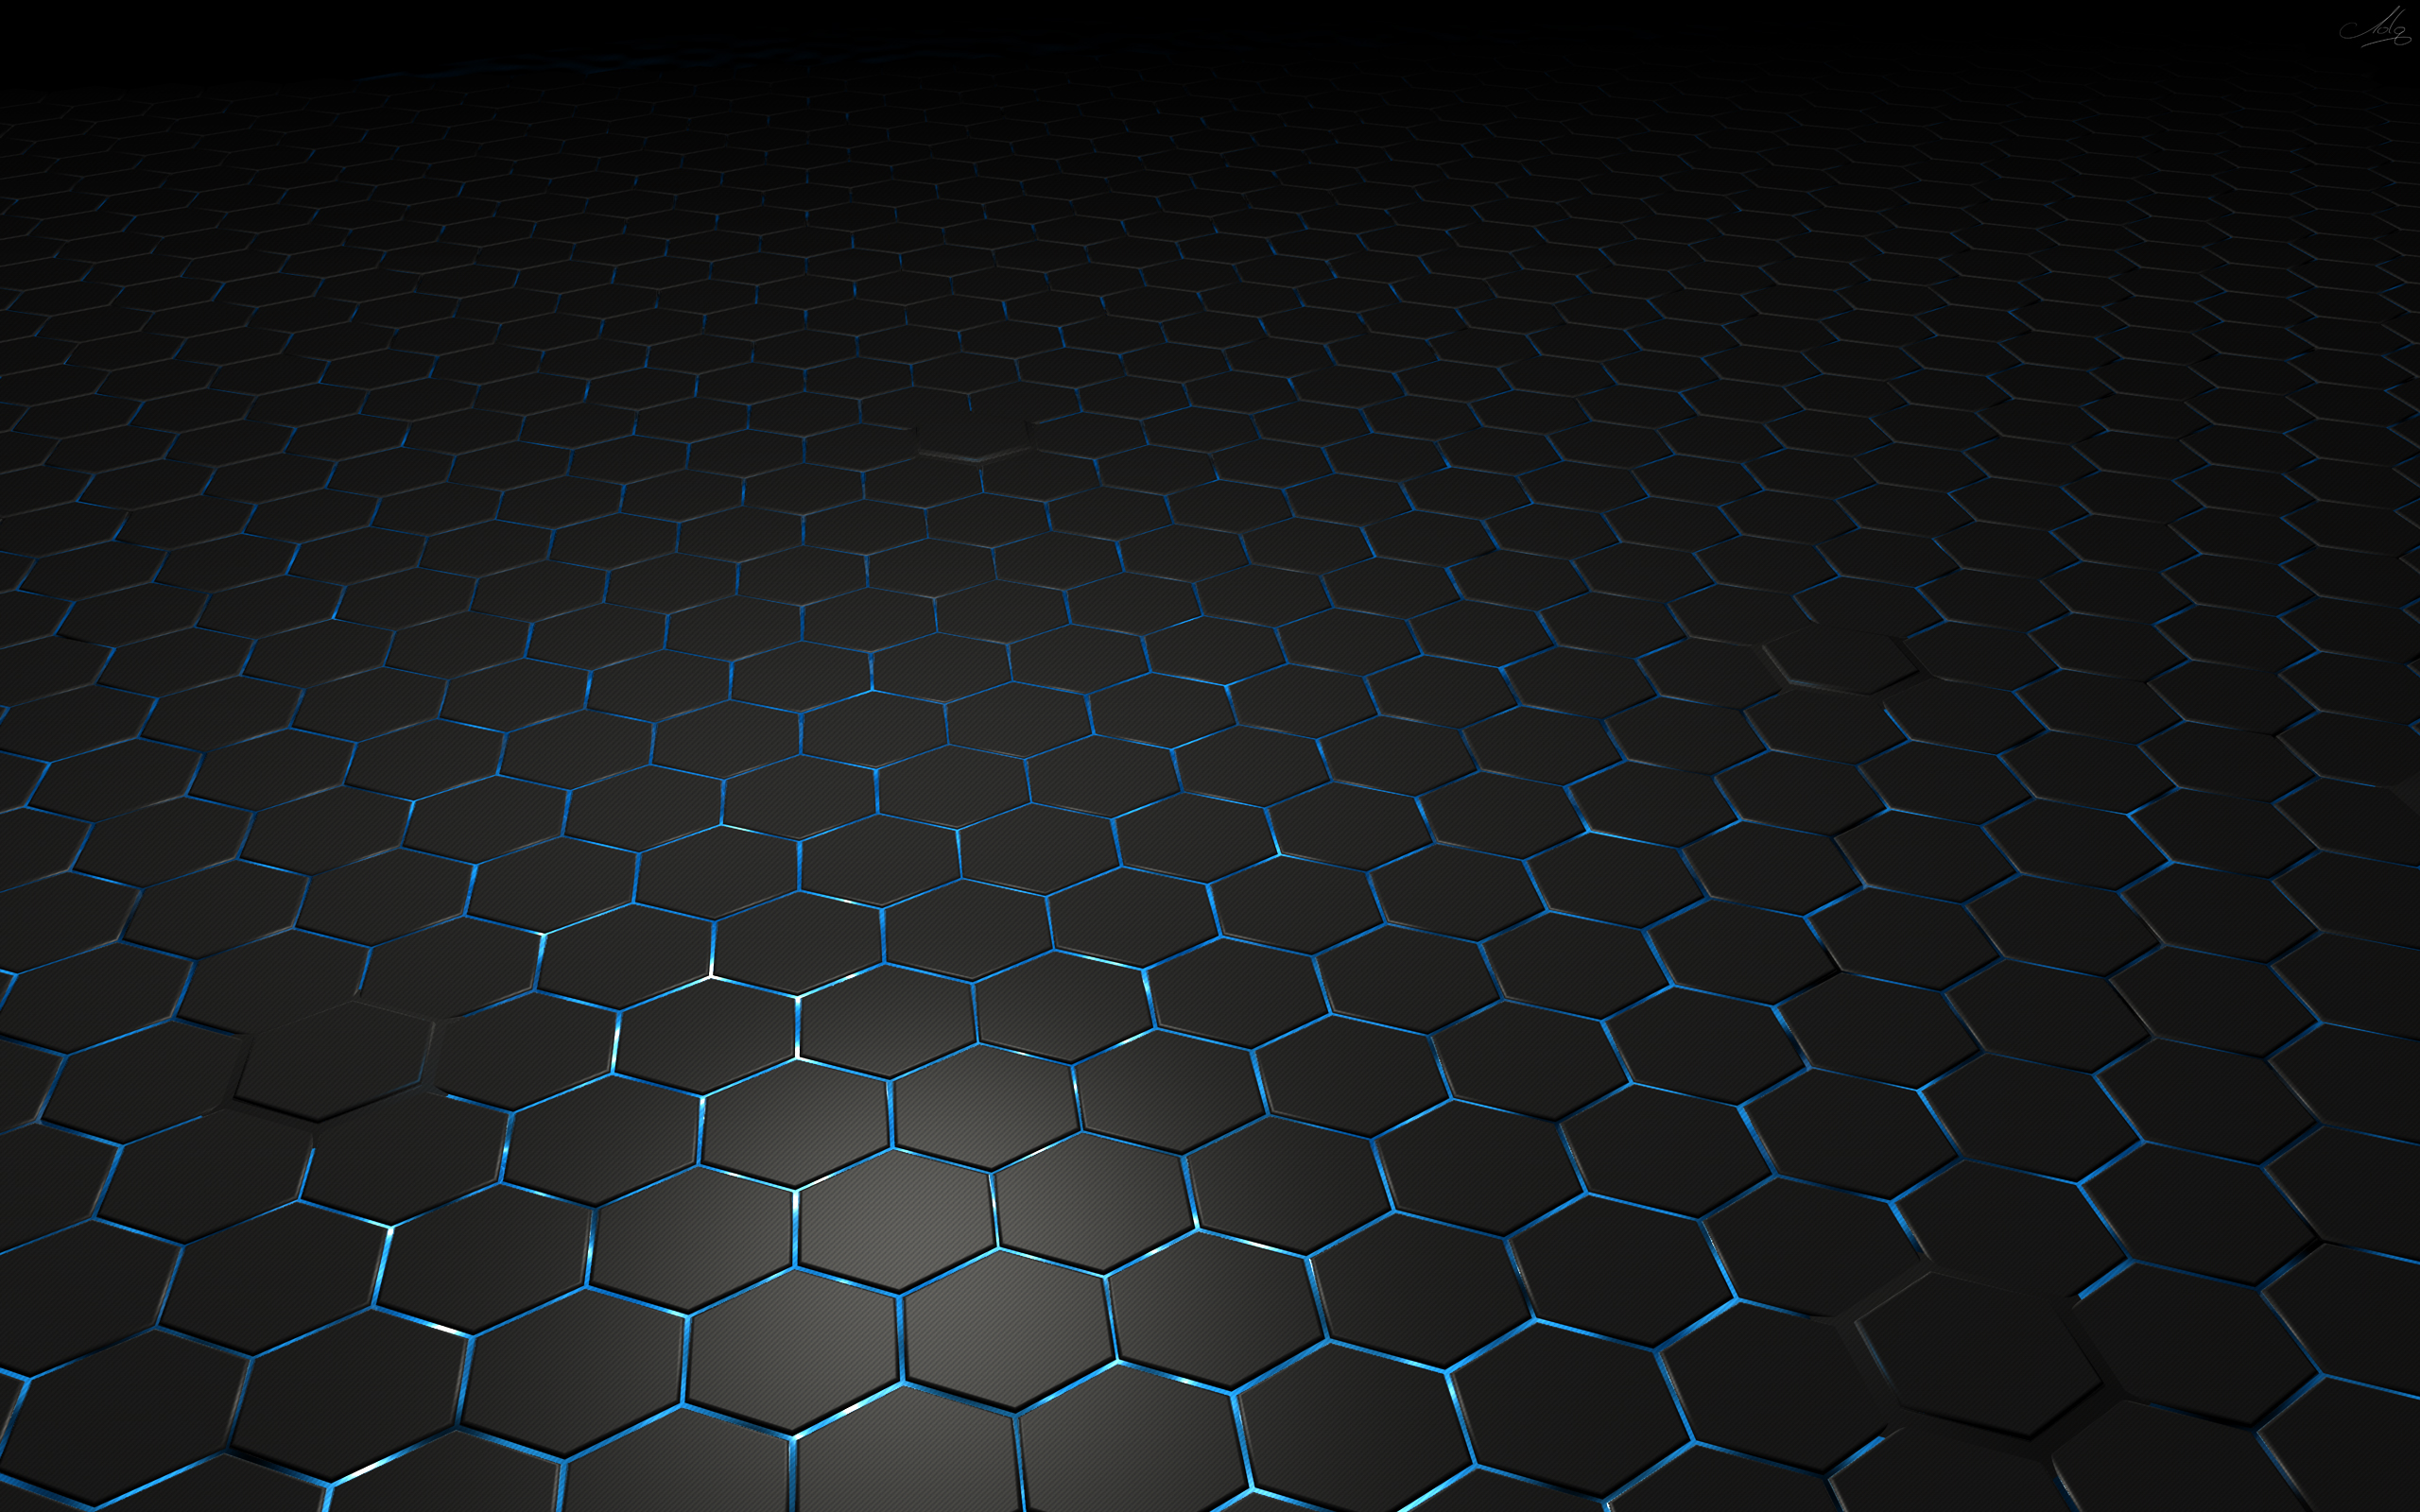 32 Hexagon HD Wallpapers | Backgrounds - Wallpaper Abyss